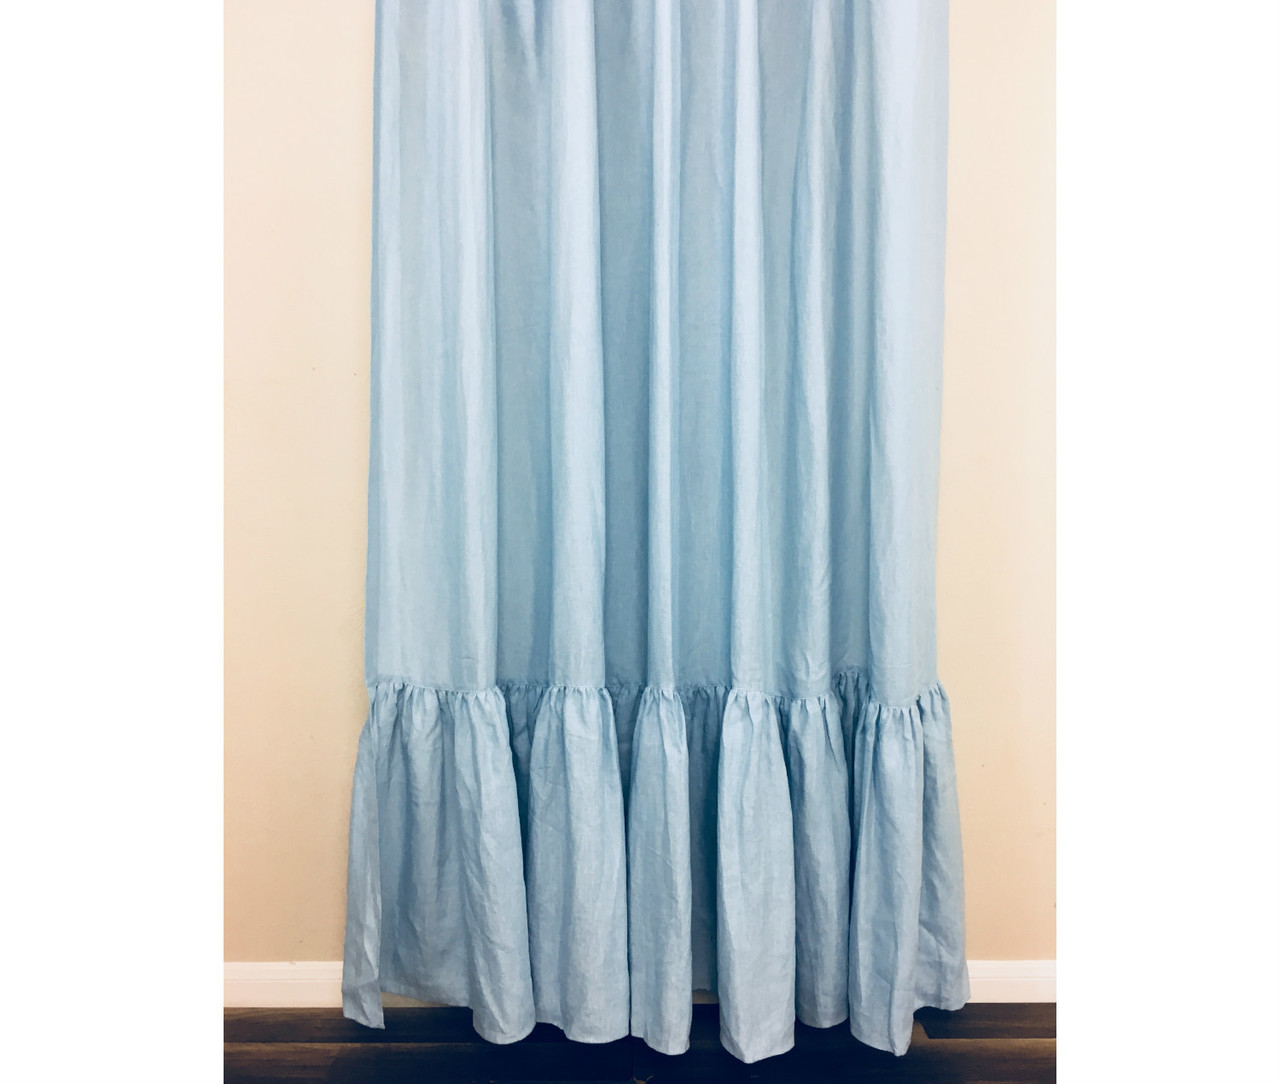 Blue Linen Shower Curtain With Mermaid Long Ruffles